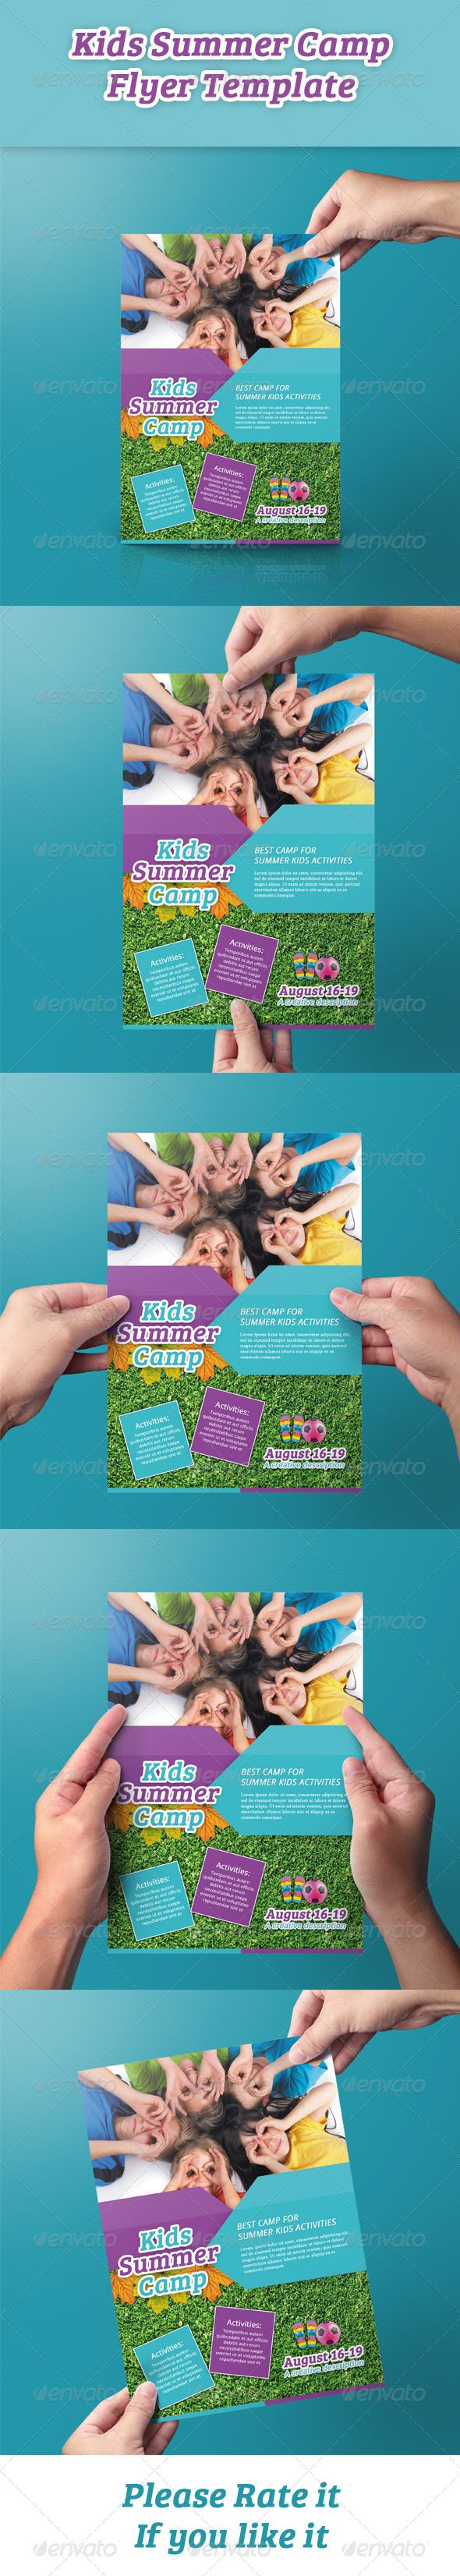 Kids Summer Camp Flyer - Events Flyers